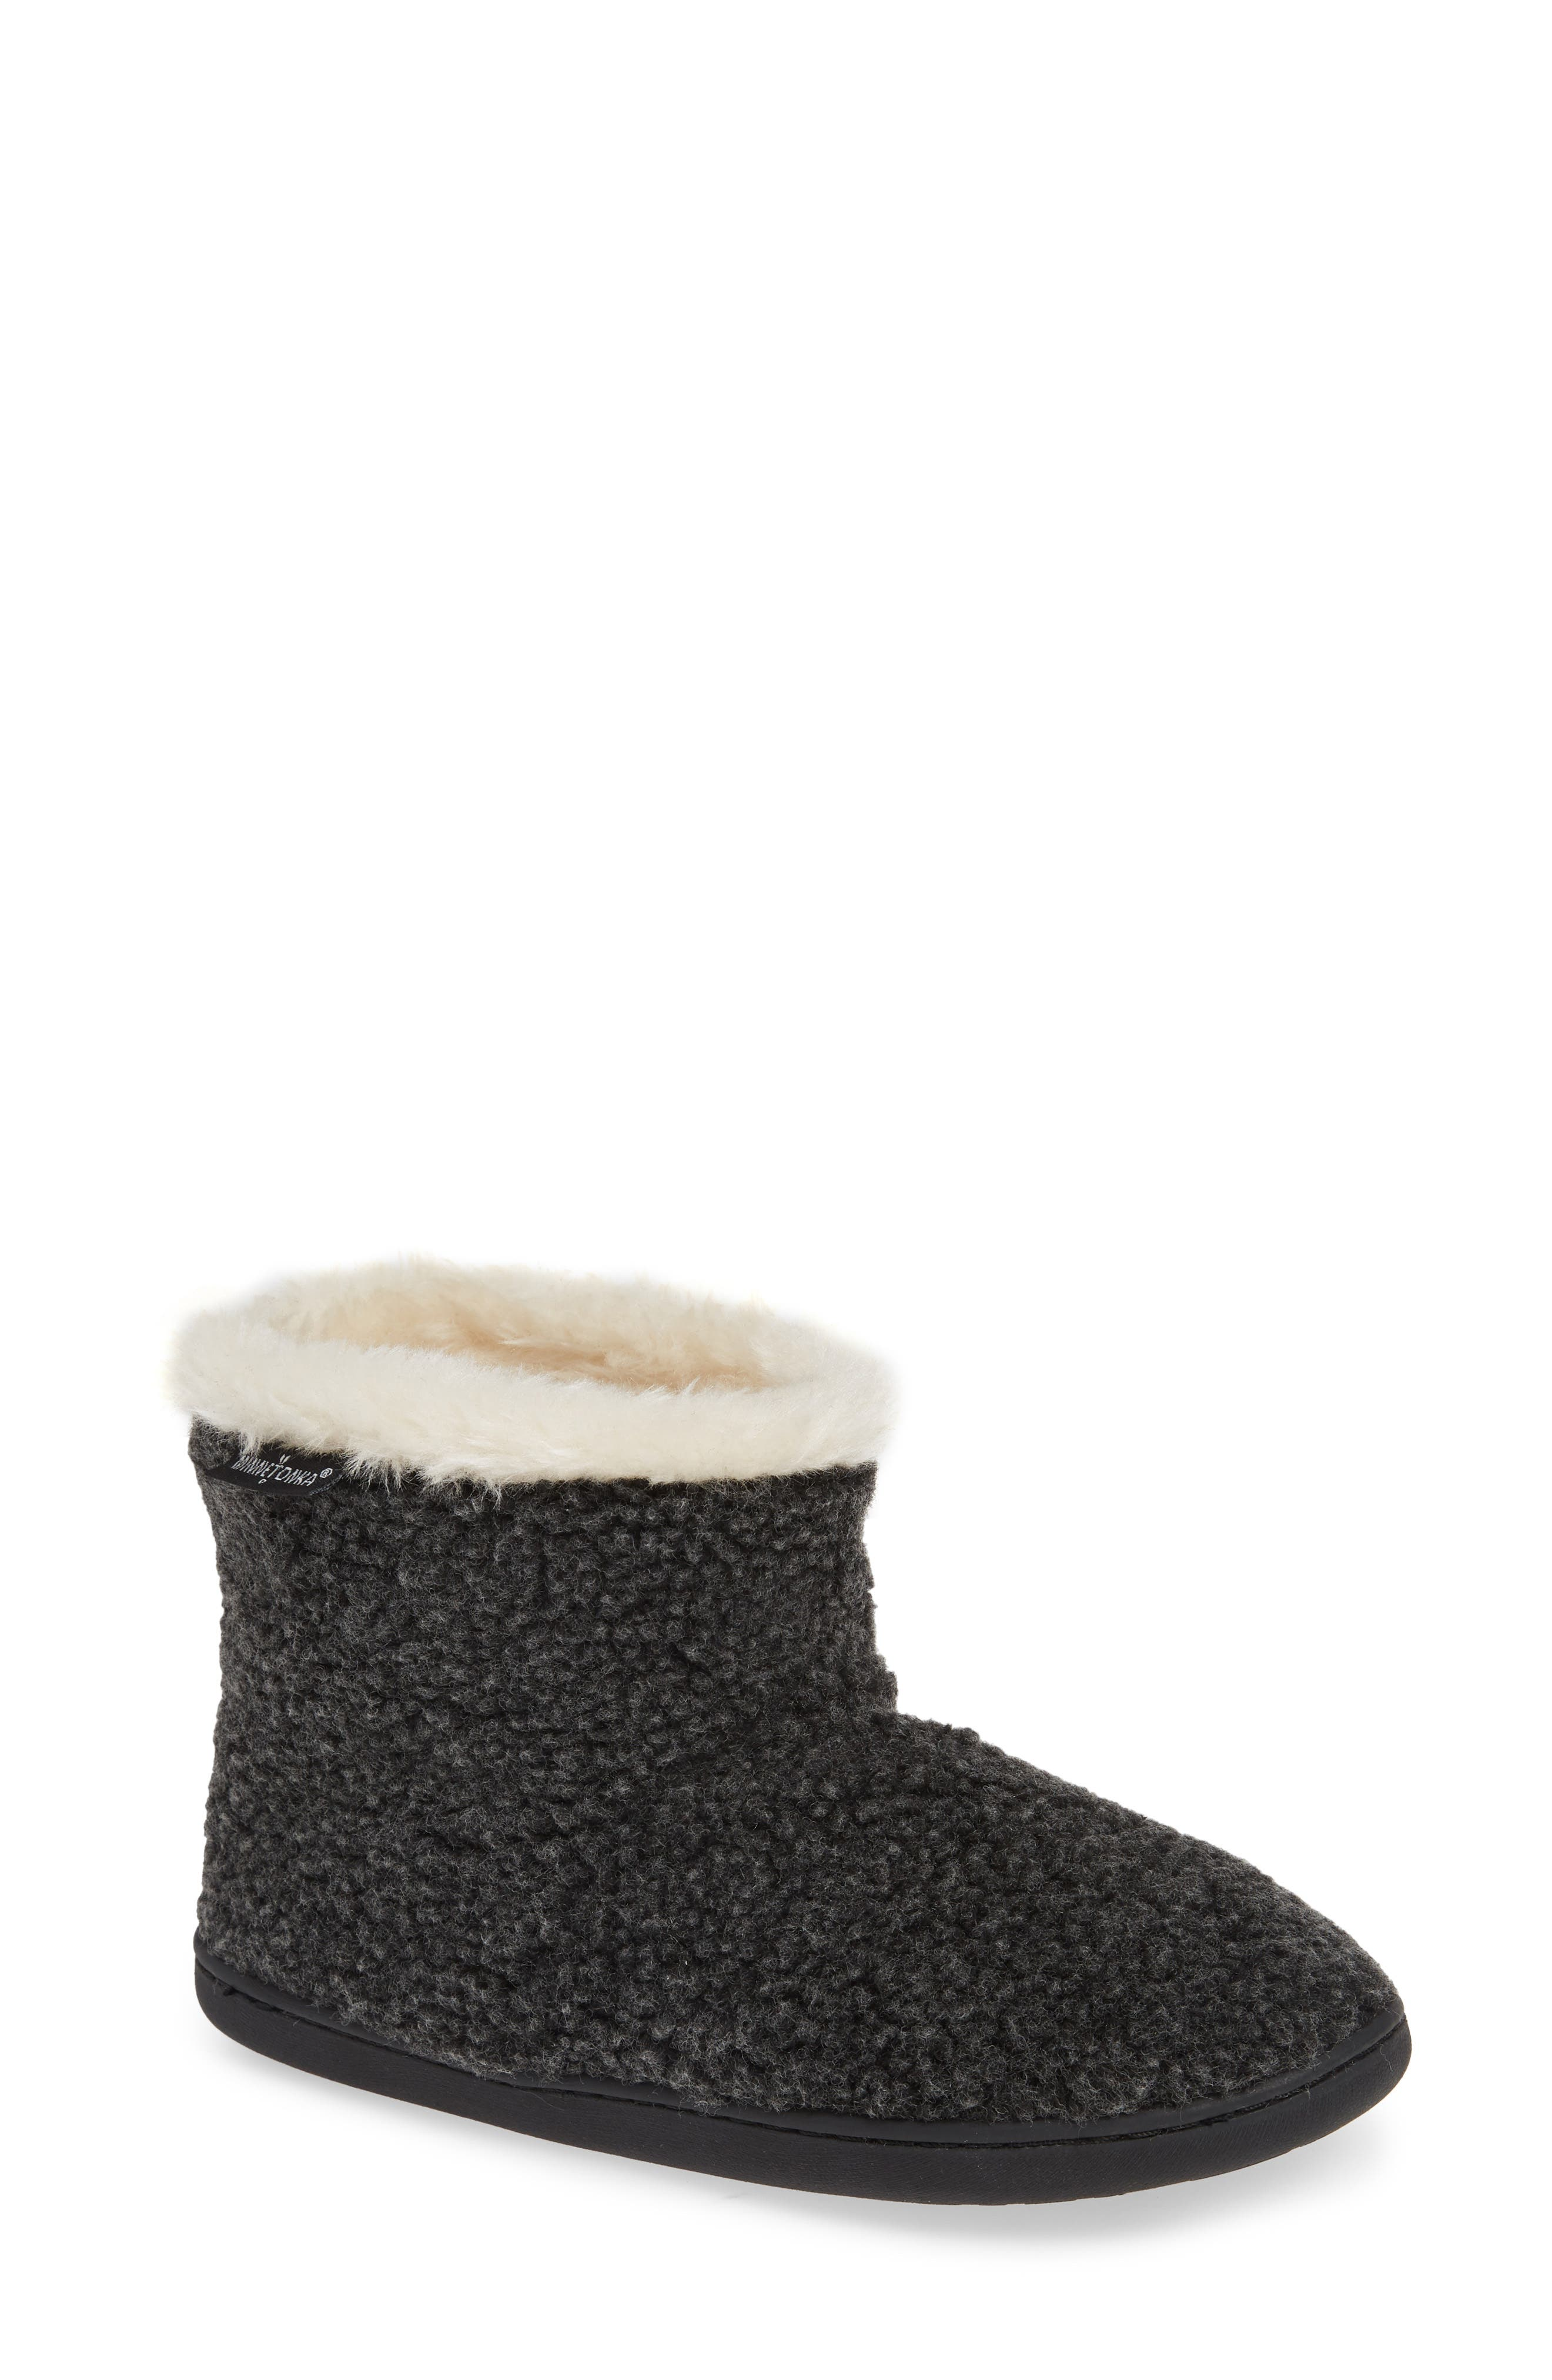 Betty Bootie,                         Main,                         color, CHARCOAL BERBER